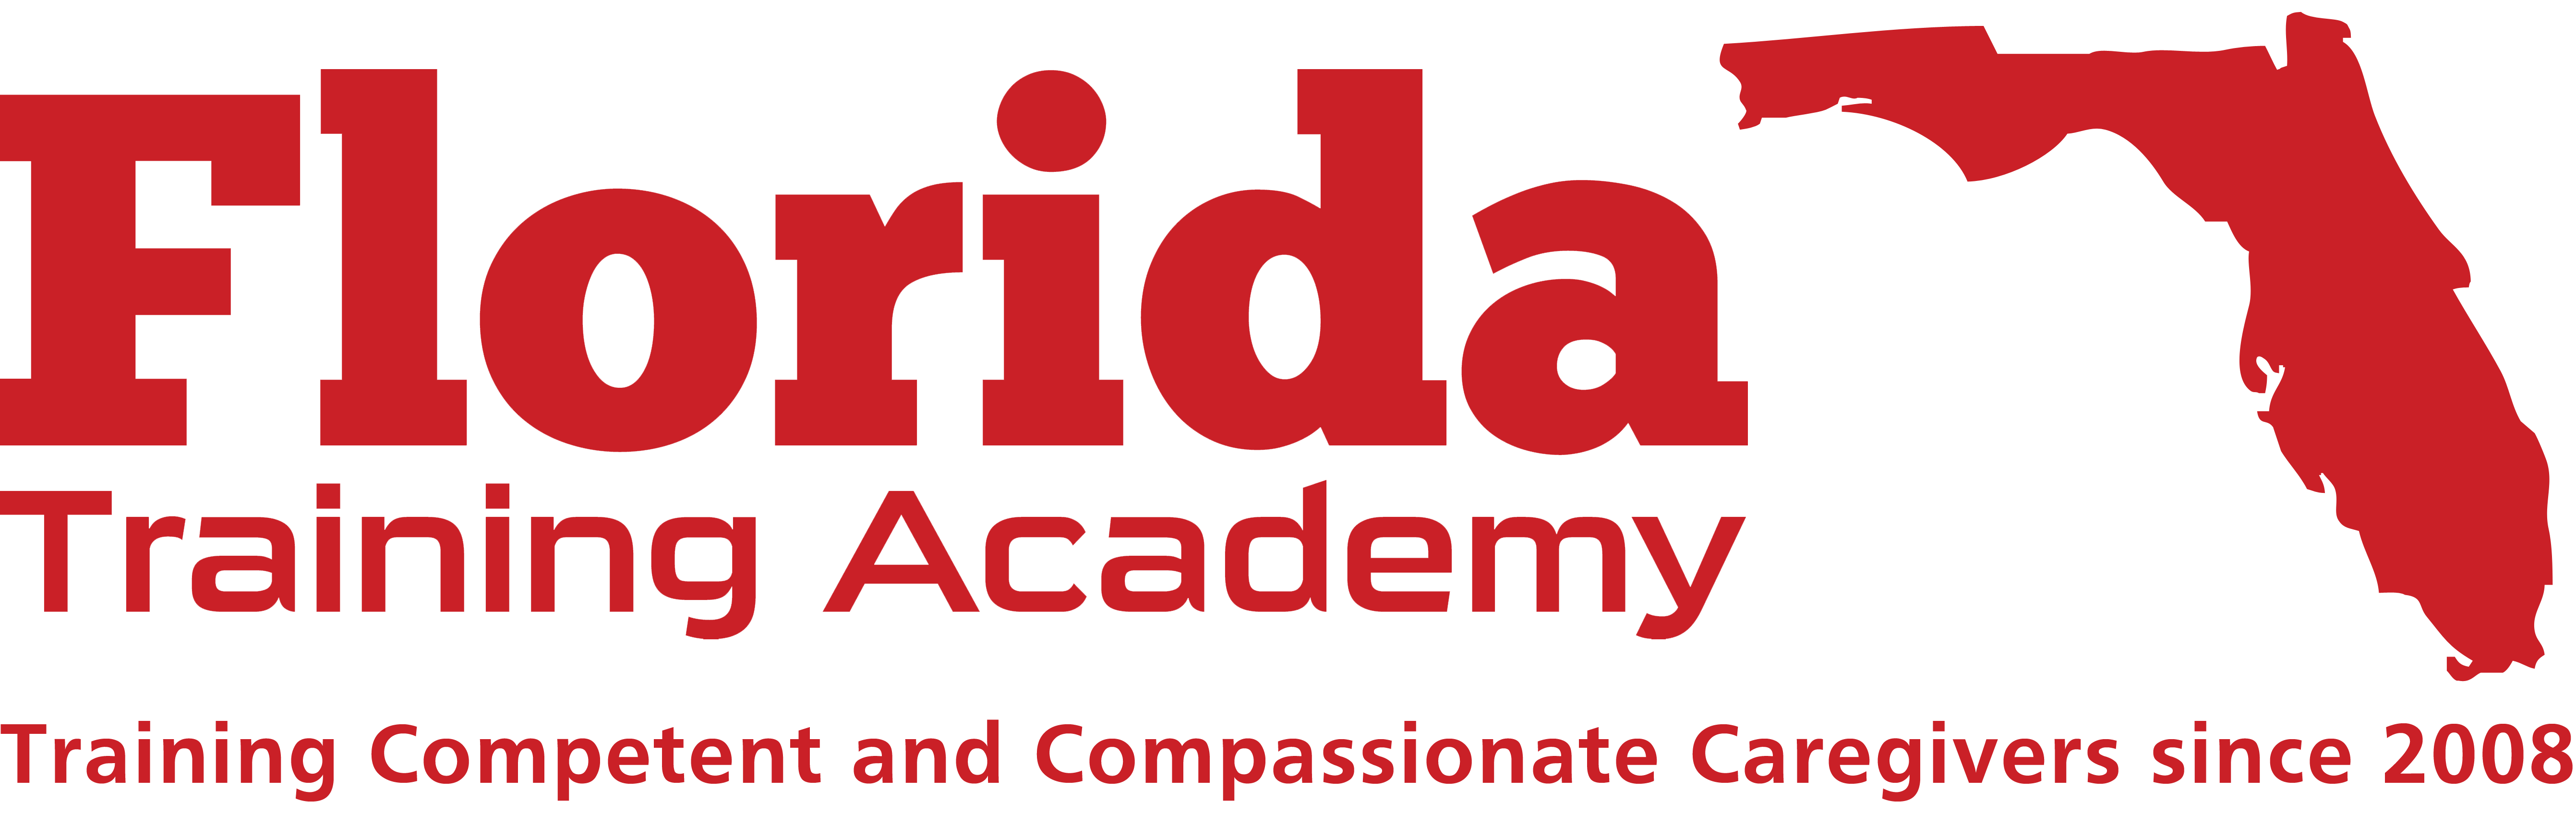 Become a CNA - Nursing Assistant, CPR, BLS, ACLS Classes in Jacksonville FL